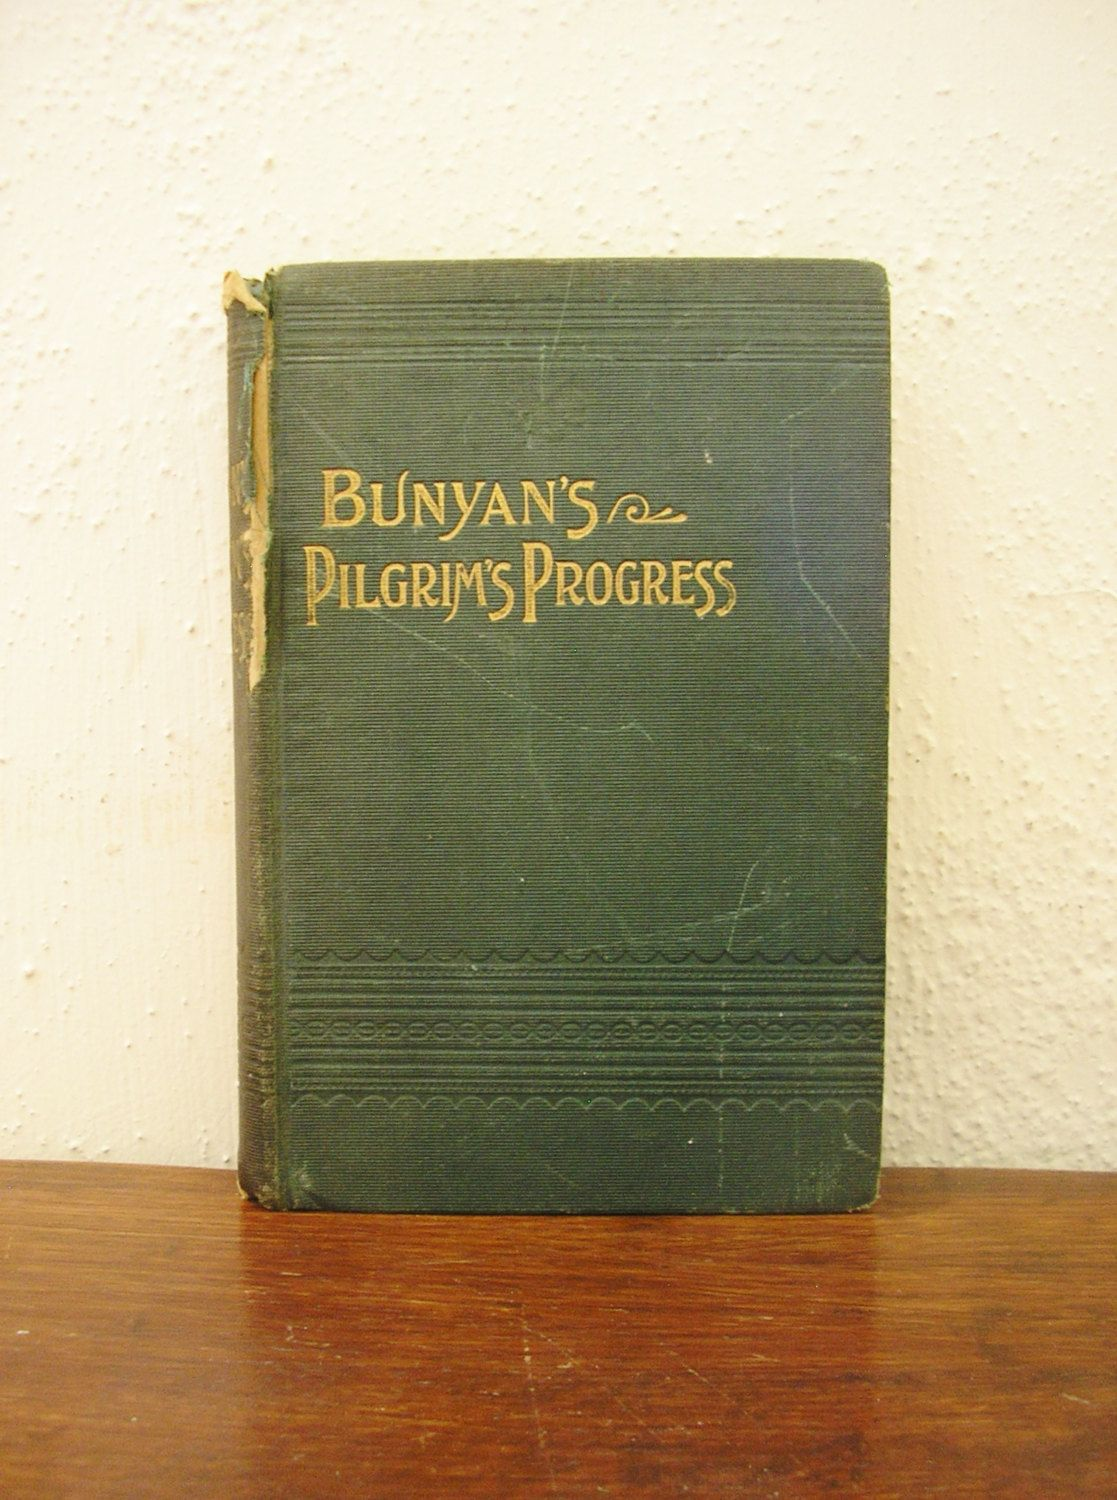 Antique Edwardian book Pilgrim's Progress John Bunyan green